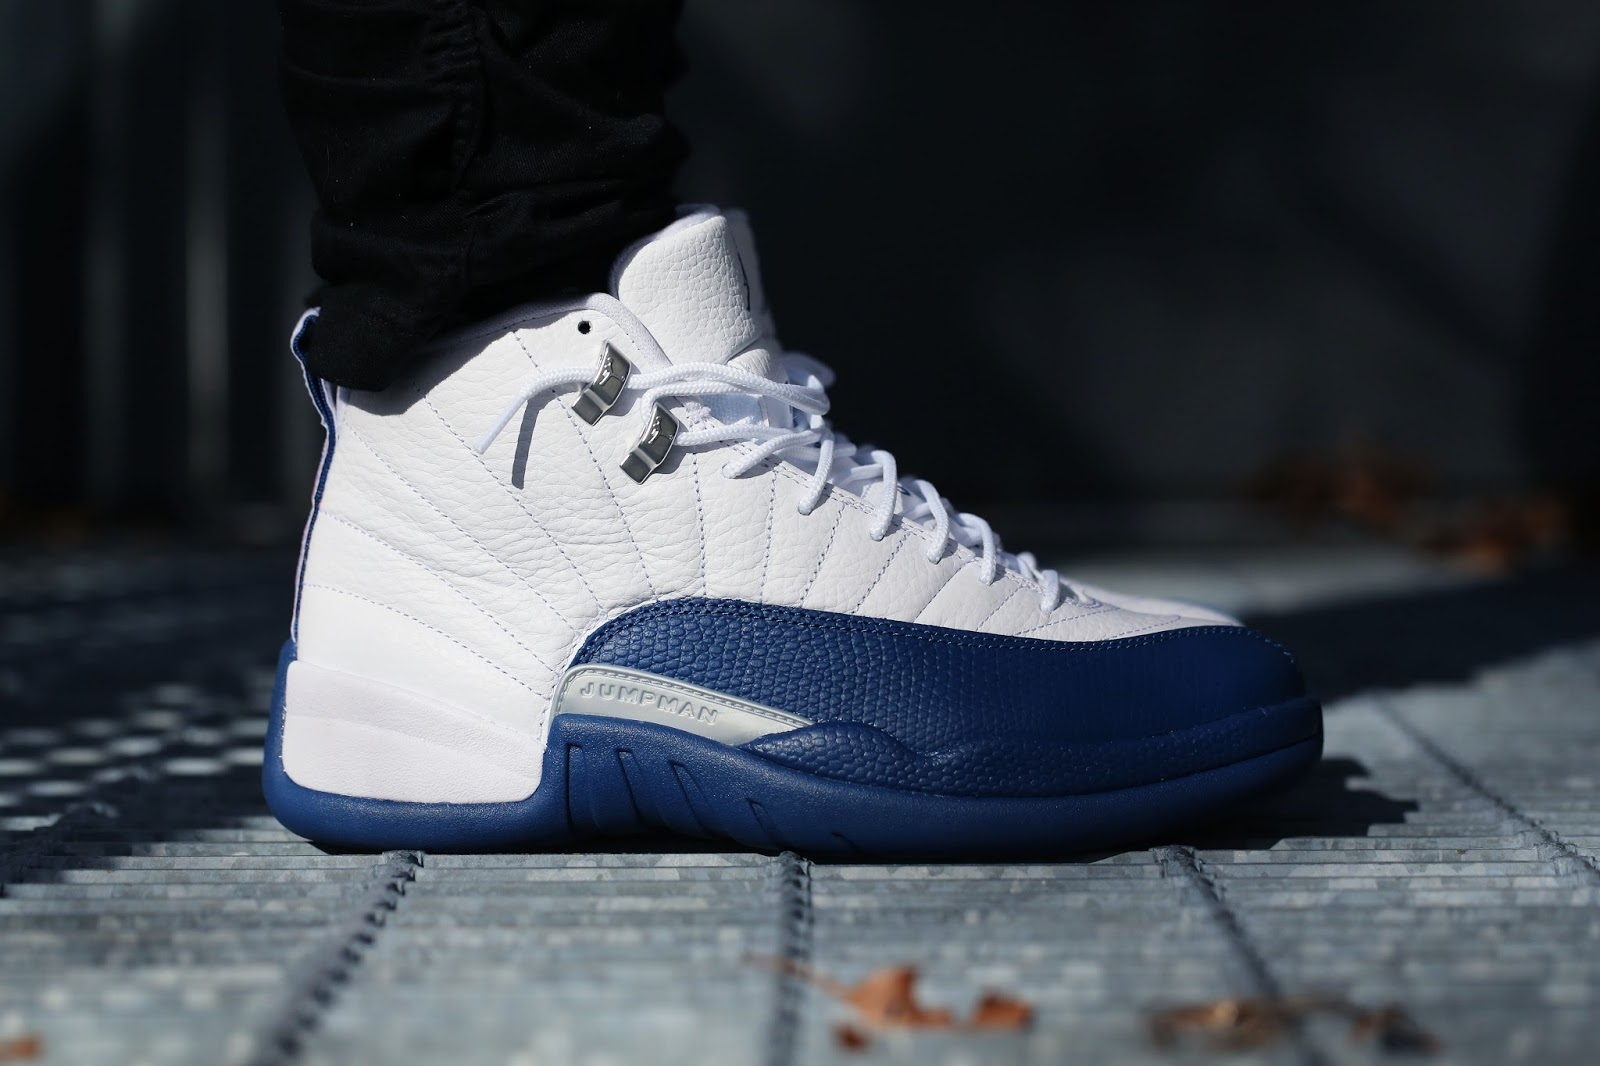 e1d7d6cad169 ajordanxi Your  1 Source For Sneaker Release Dates  The Release Date ...